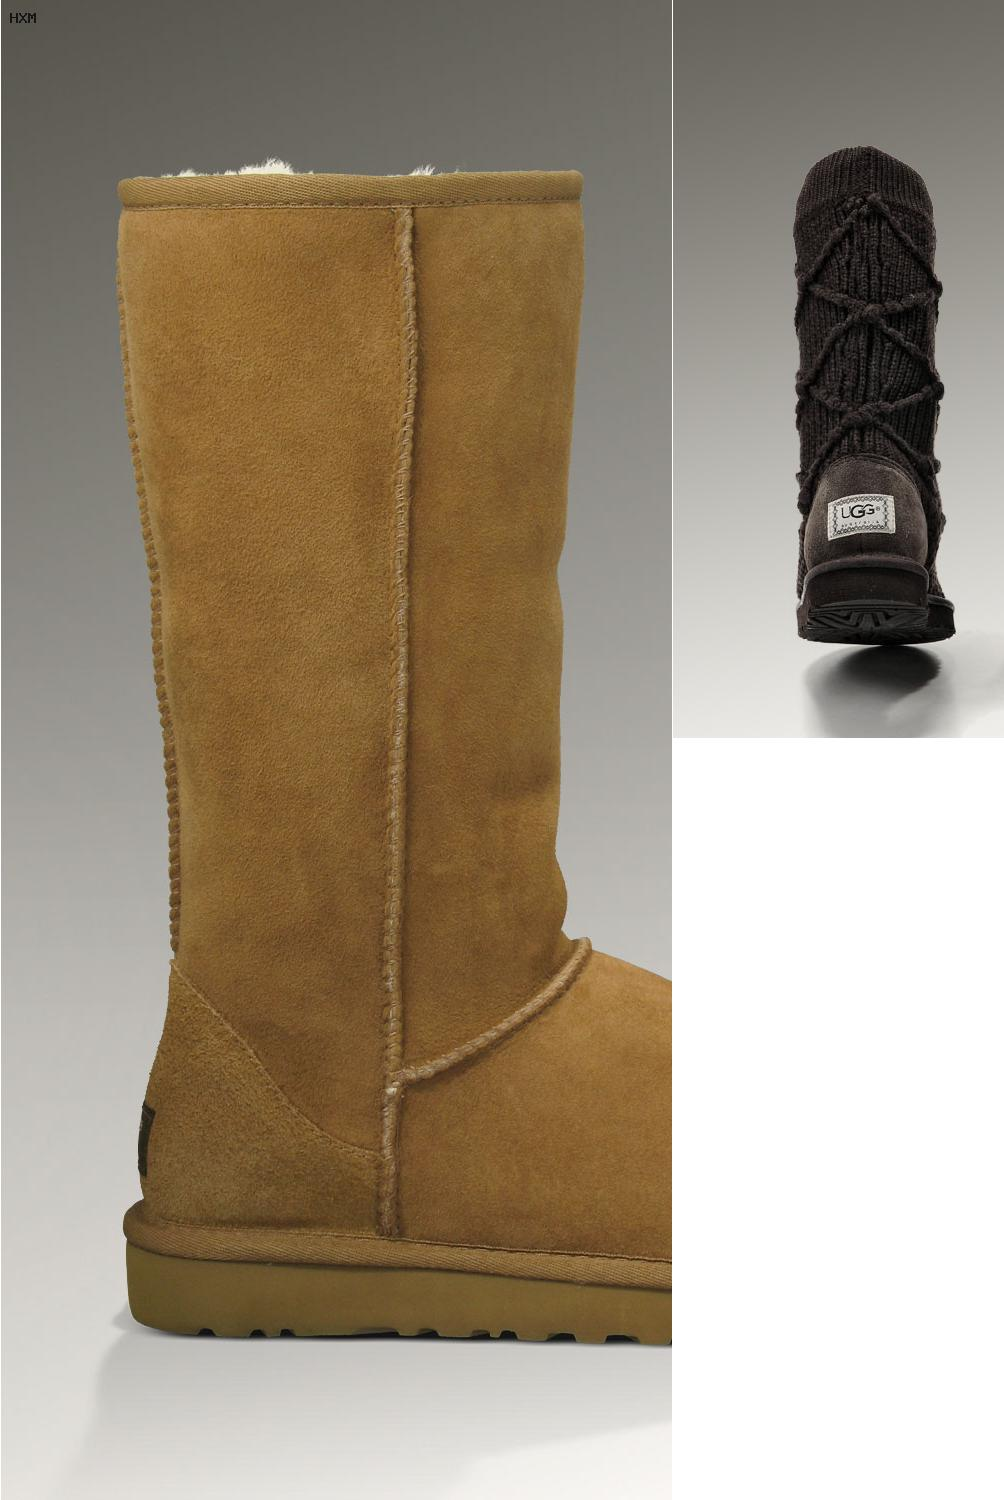 botas ugg color beige